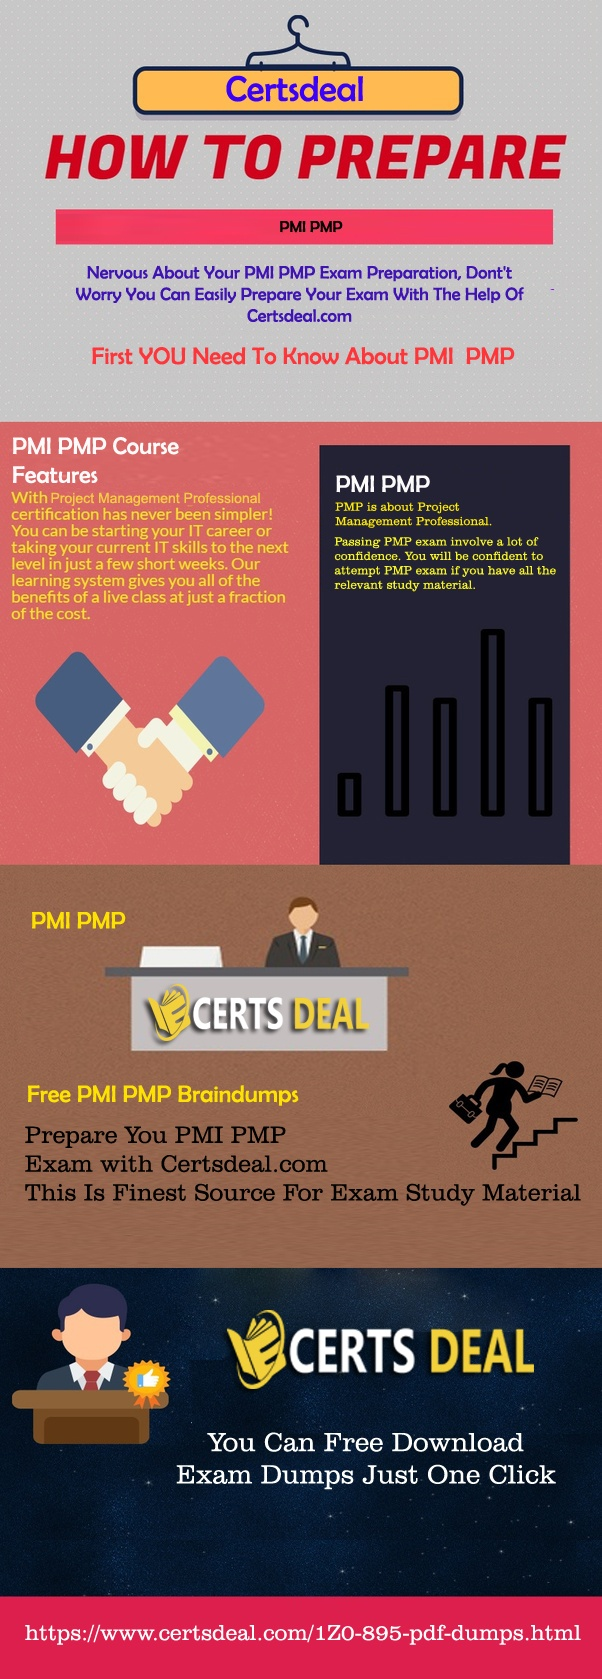 What Skills Are Required To Pass The Pmp Exam Quora